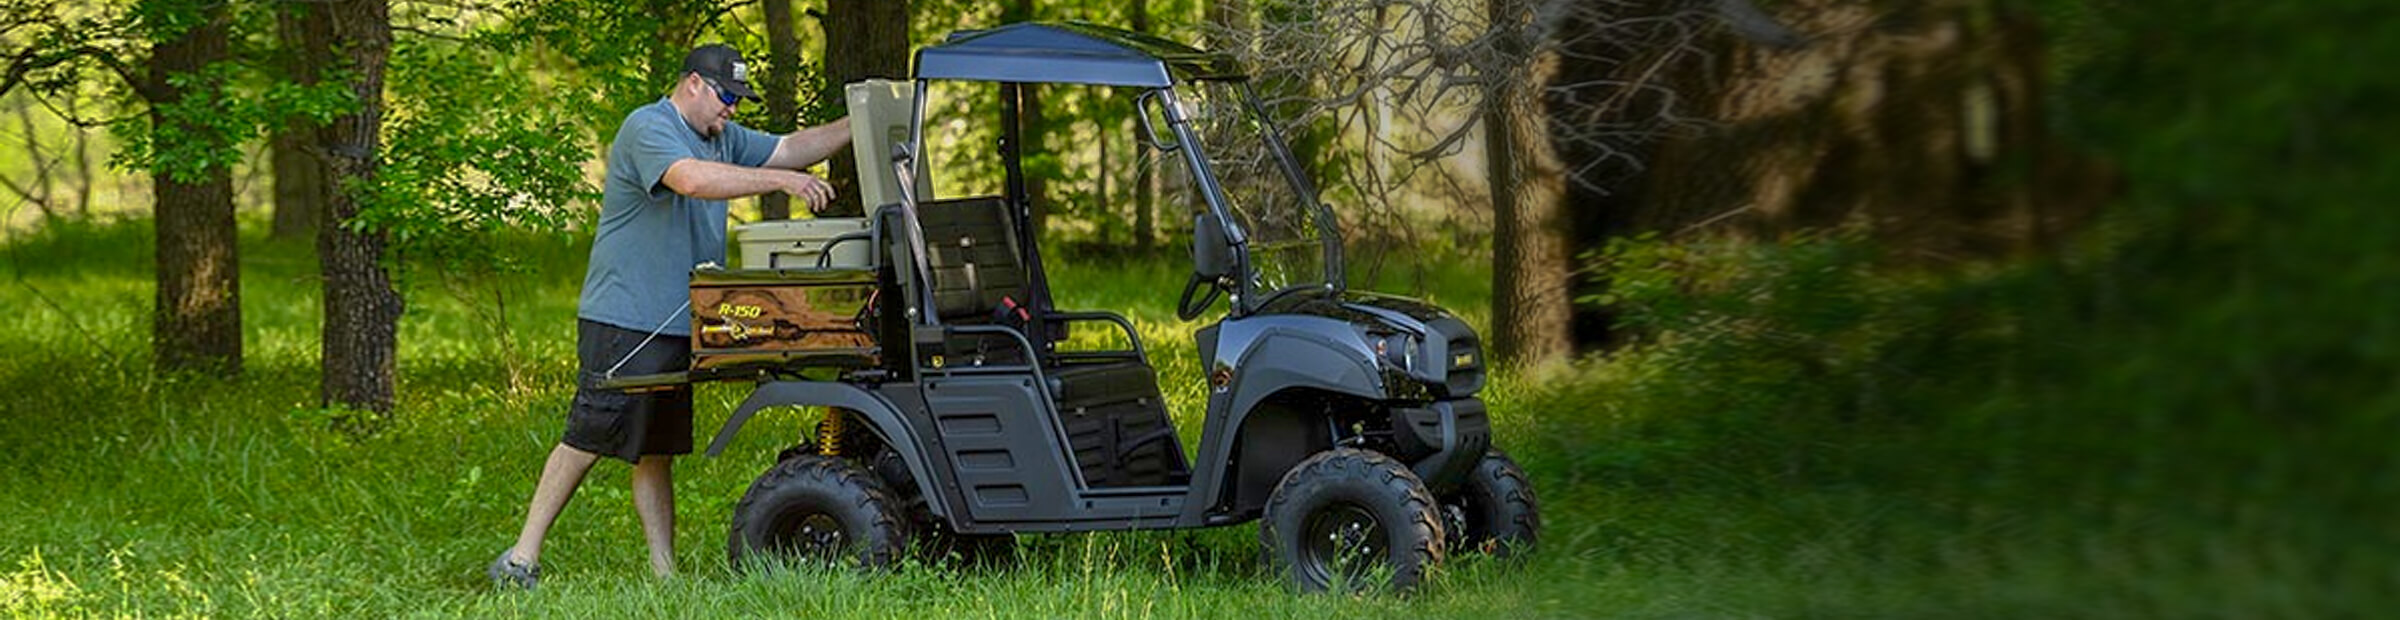 2019 Utility Vehicles